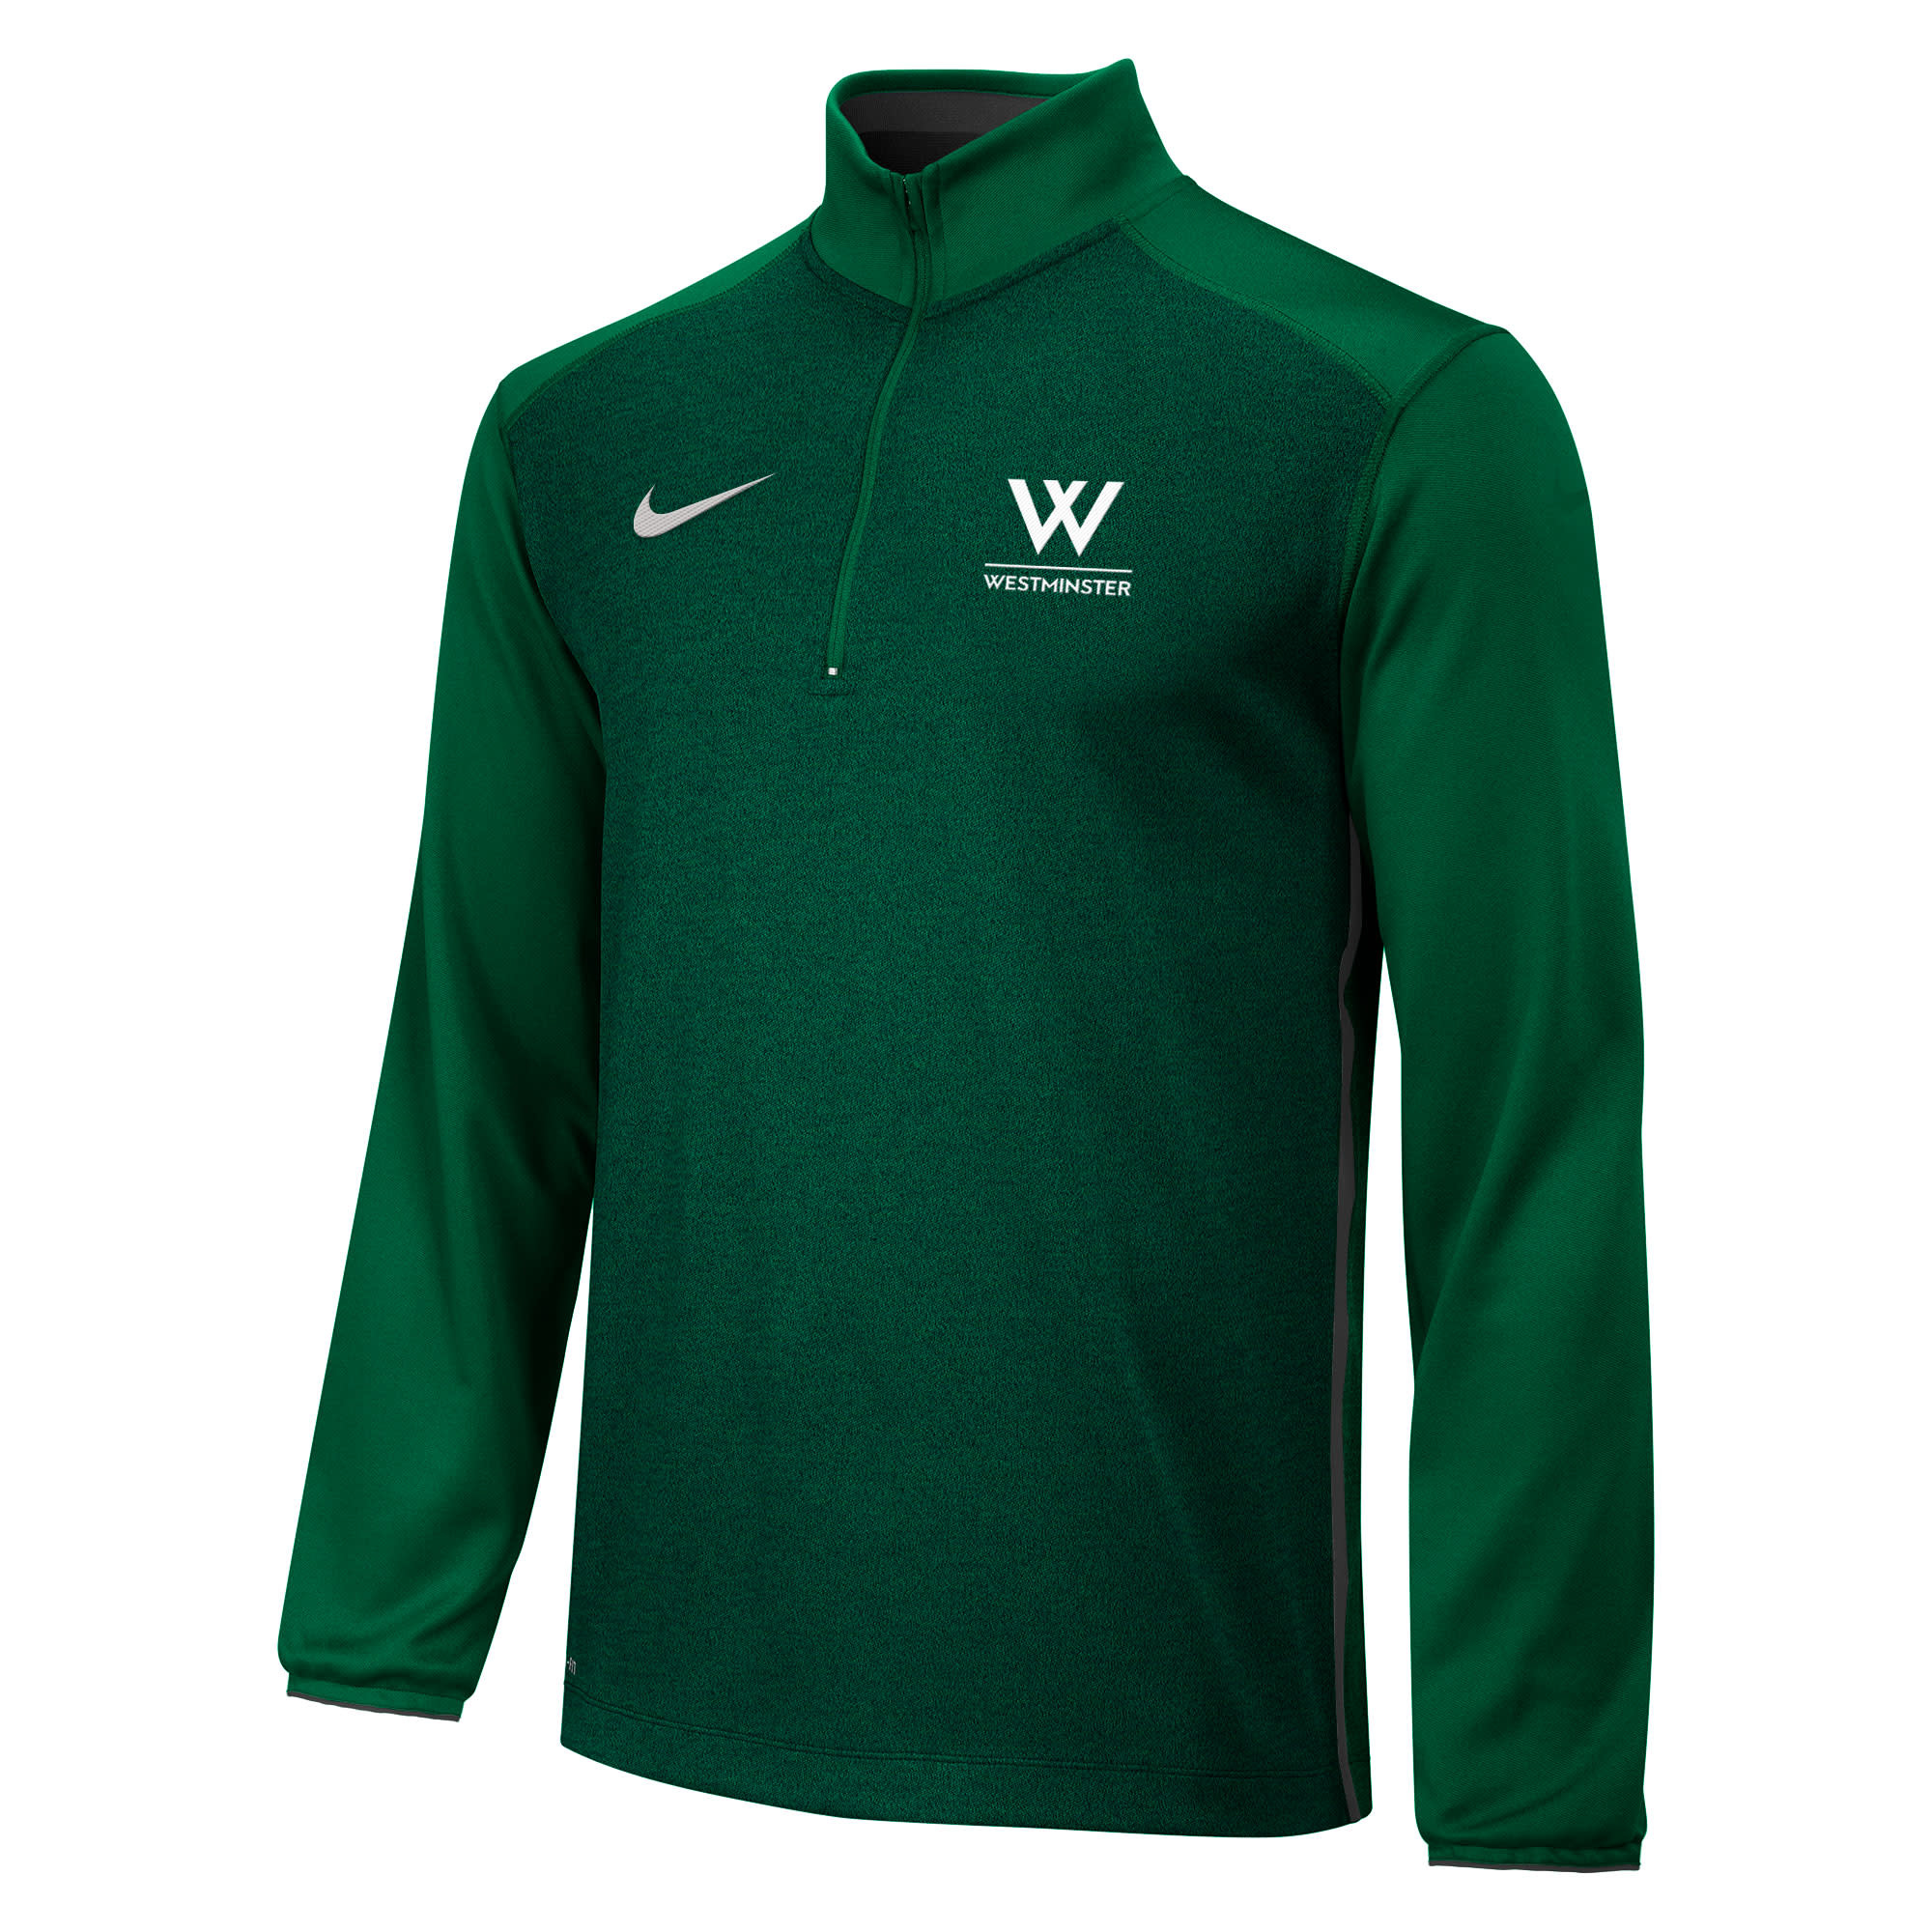 """Nike Pullover: Nike Coaches 1/2 Zip - """"W"""" over Westminster"""